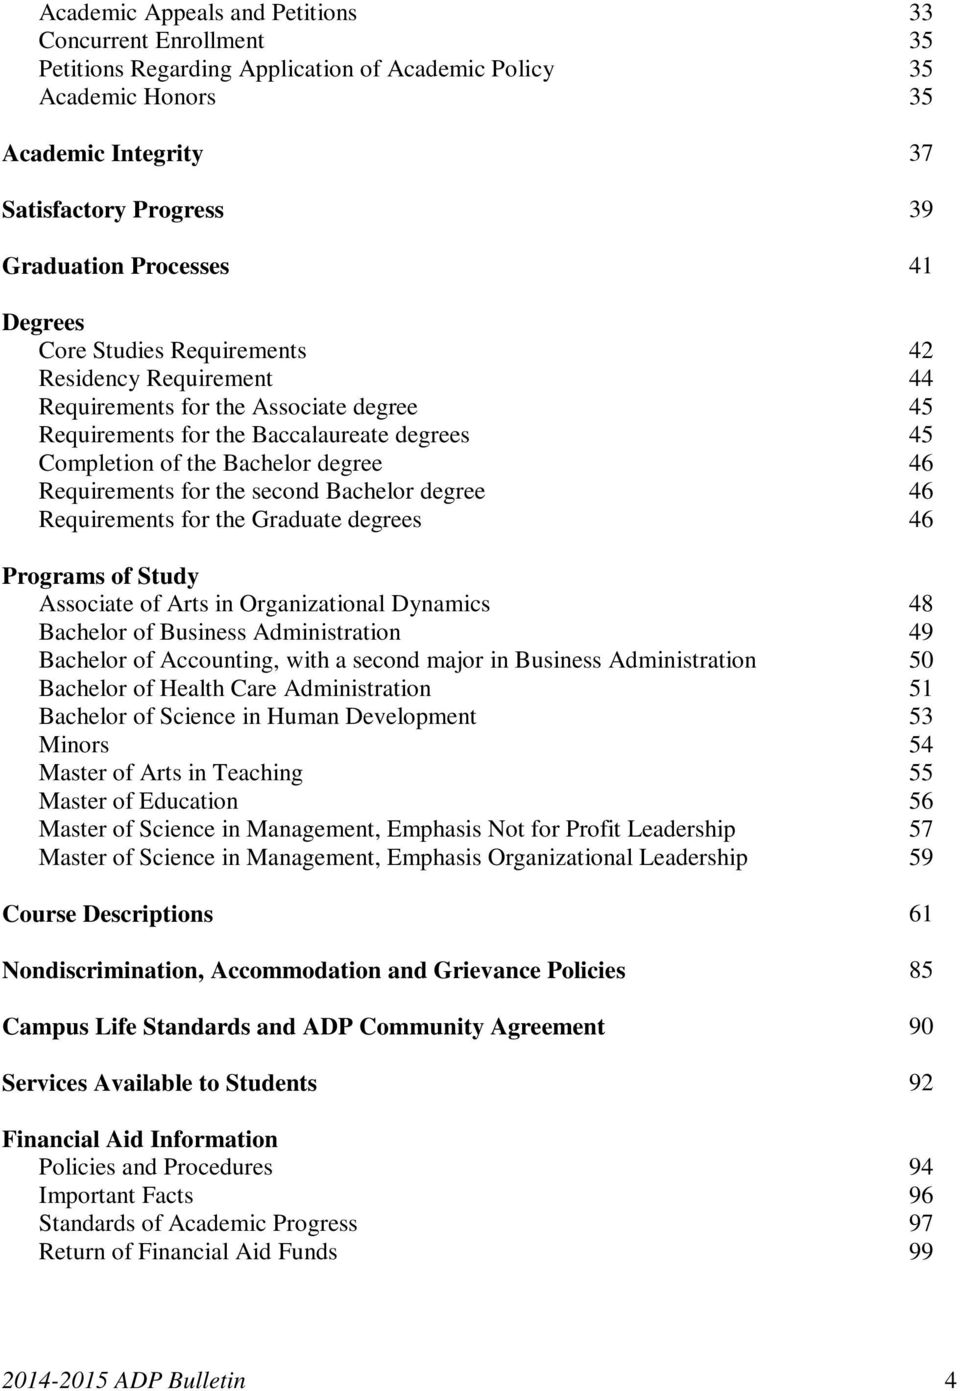 Requirements for the second Bachelor degree 46 Requirements for the Graduate degrees 46 Programs of Study Associate of Arts in Organizational Dynamics 48 Bachelor of Business Administration 49